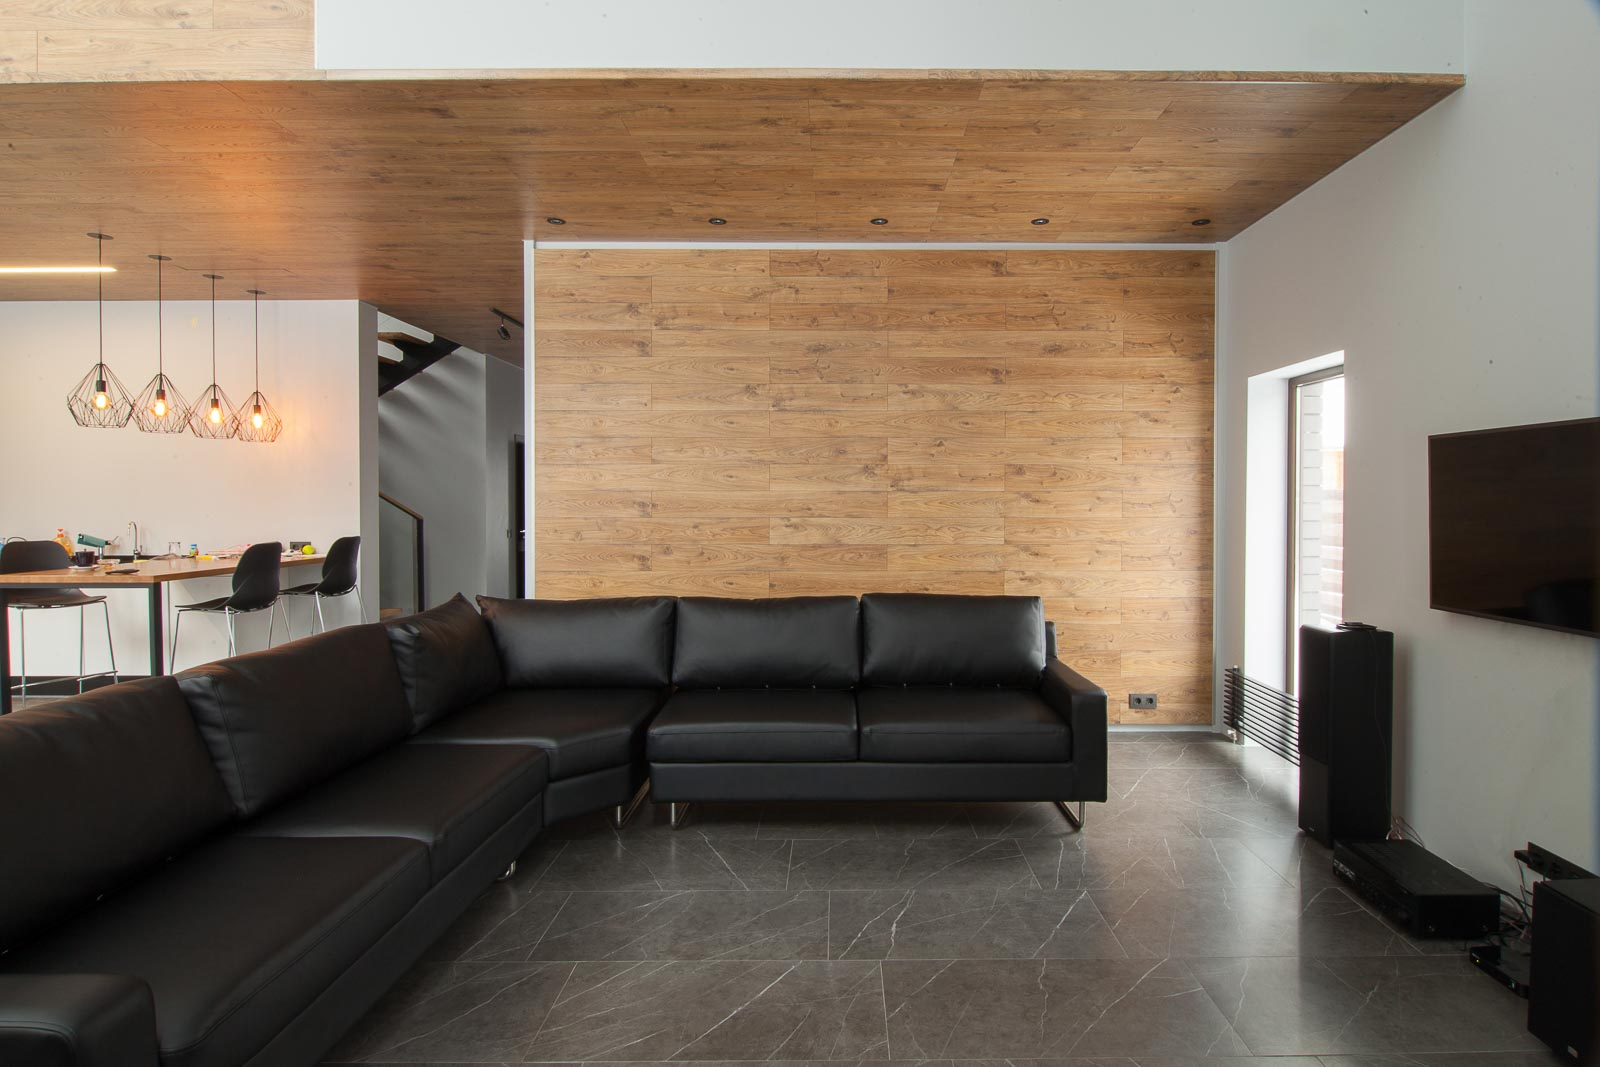 Interior design of the living room with wooden ceiling